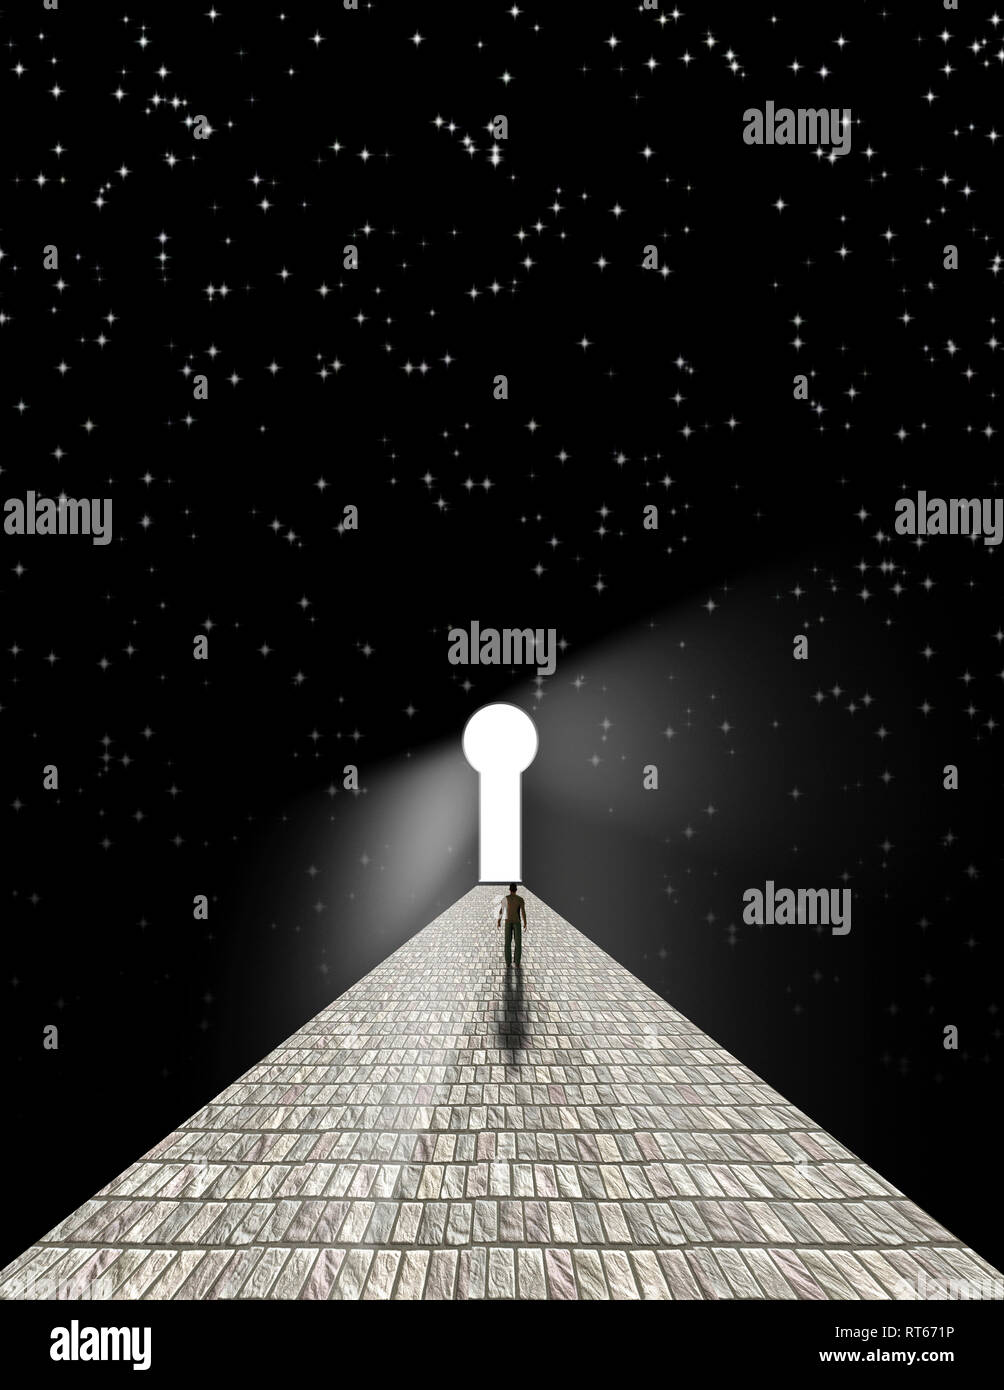 Man before keyhole on stone road with starry background. Stock Photo